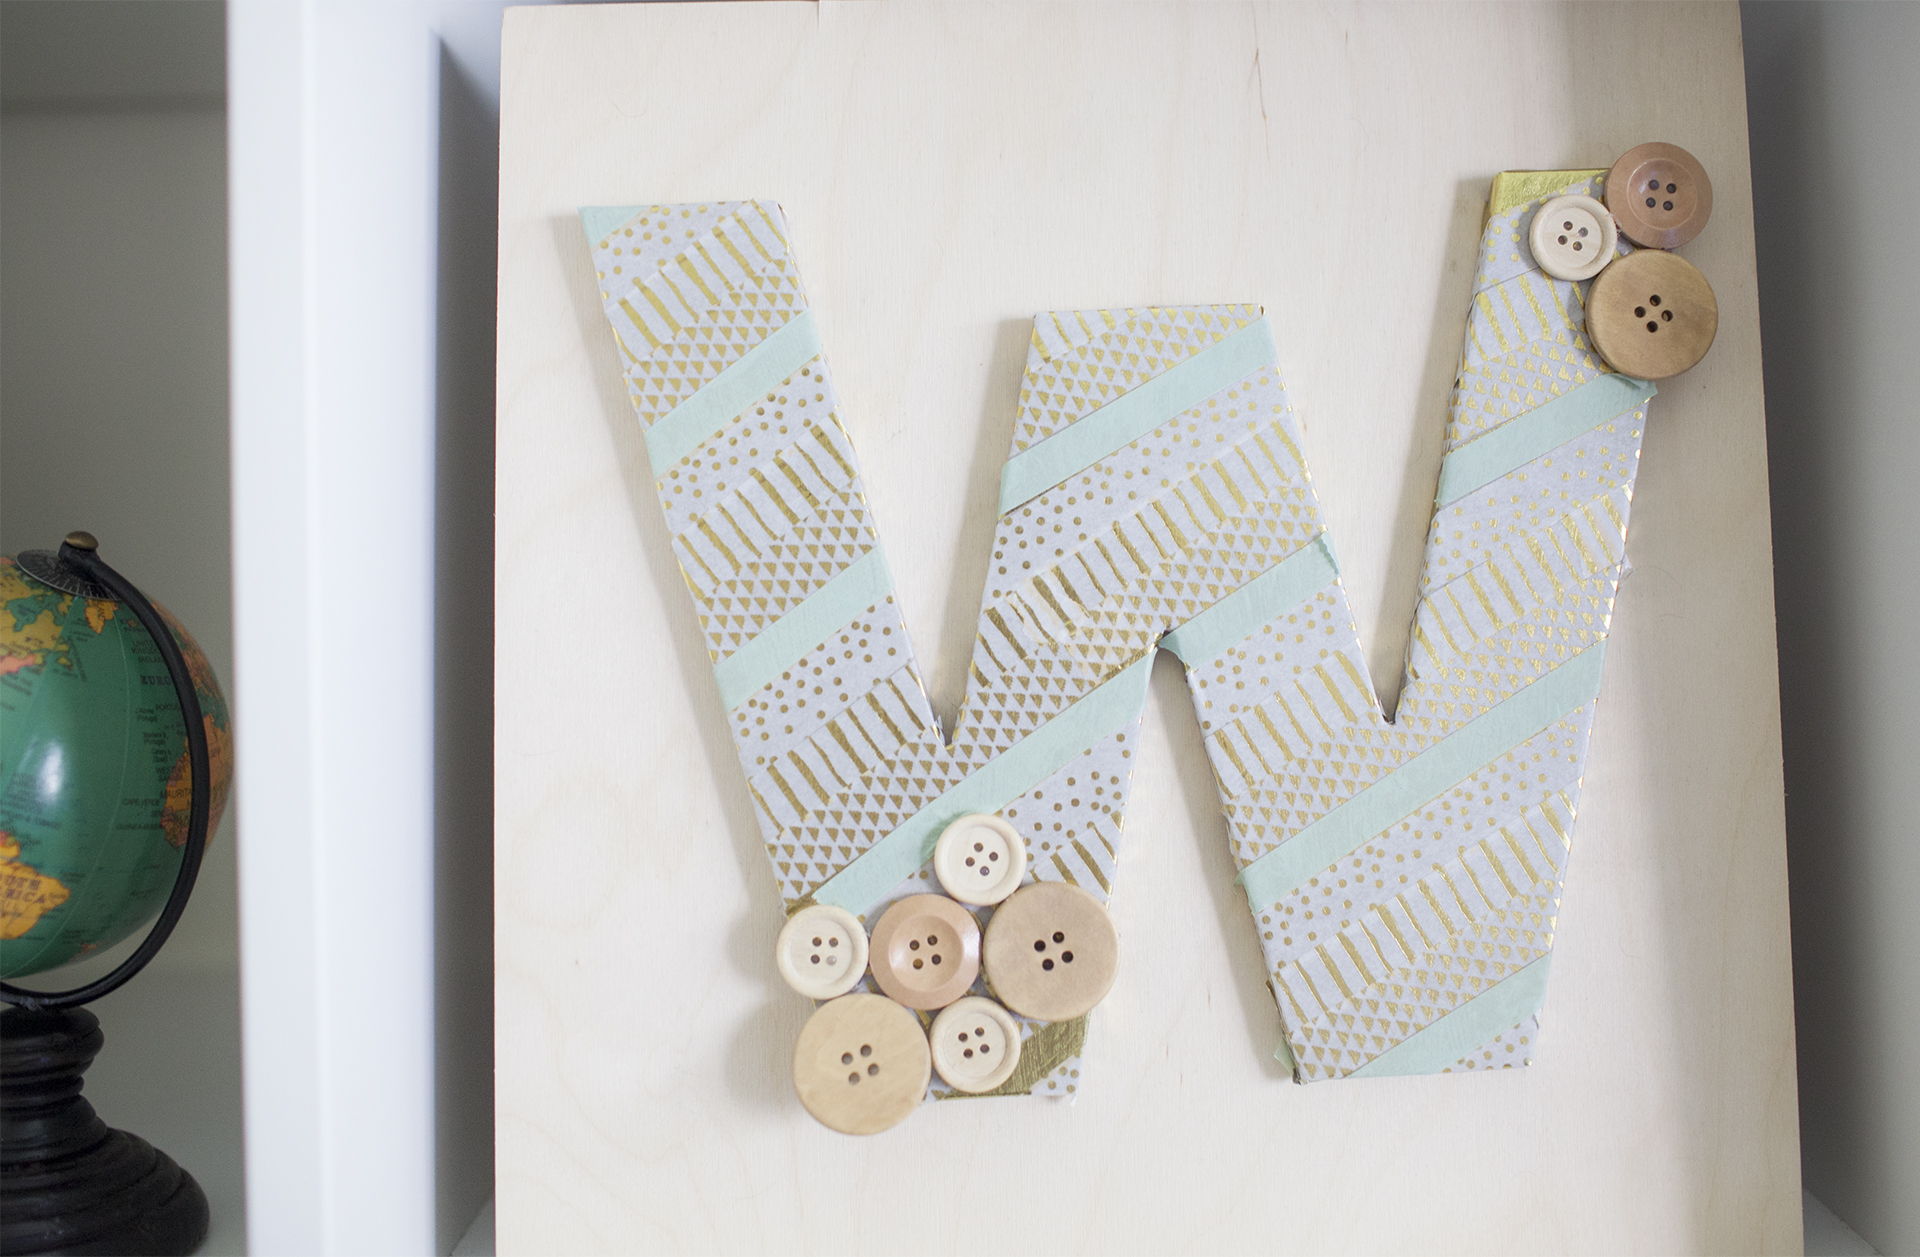 Craft a personalized monogram using Washi Tape. This DIY can be customized for a children's room, living room, or office.